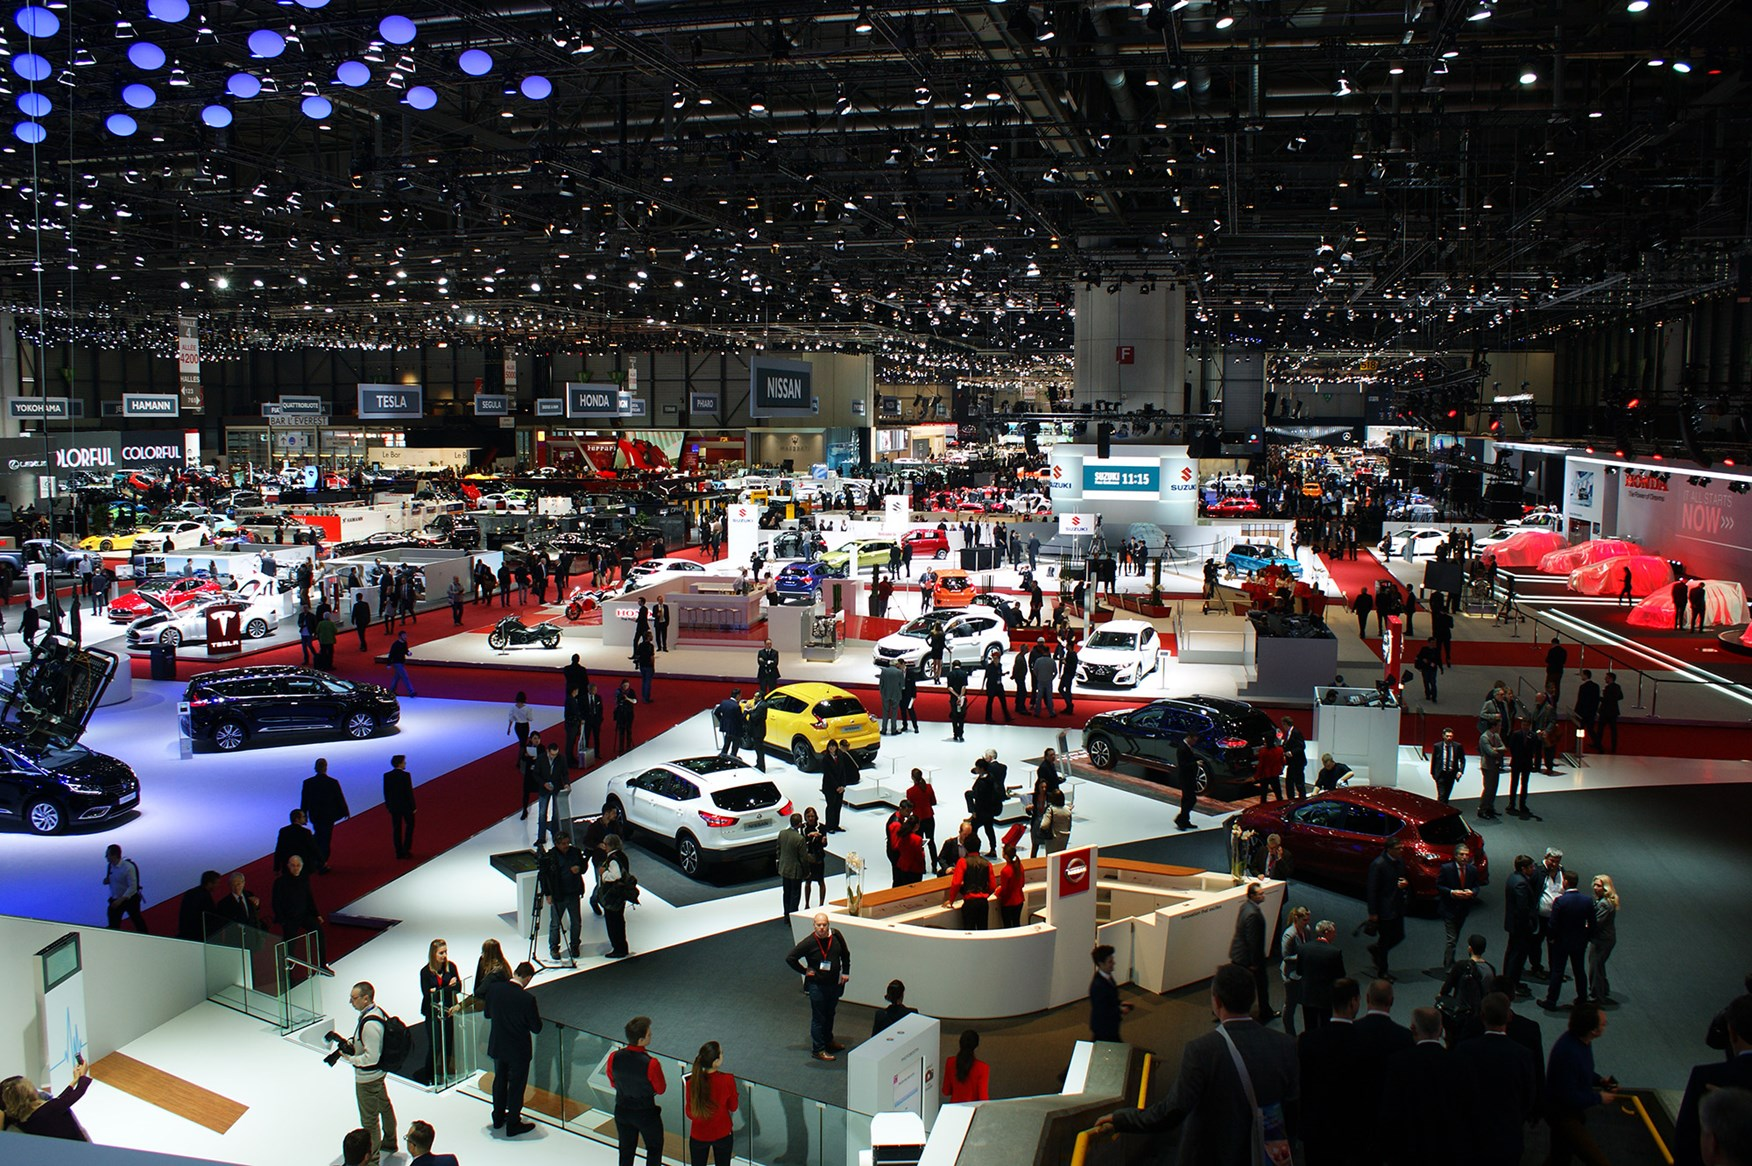 Top 5 Best Auto Shows in the World